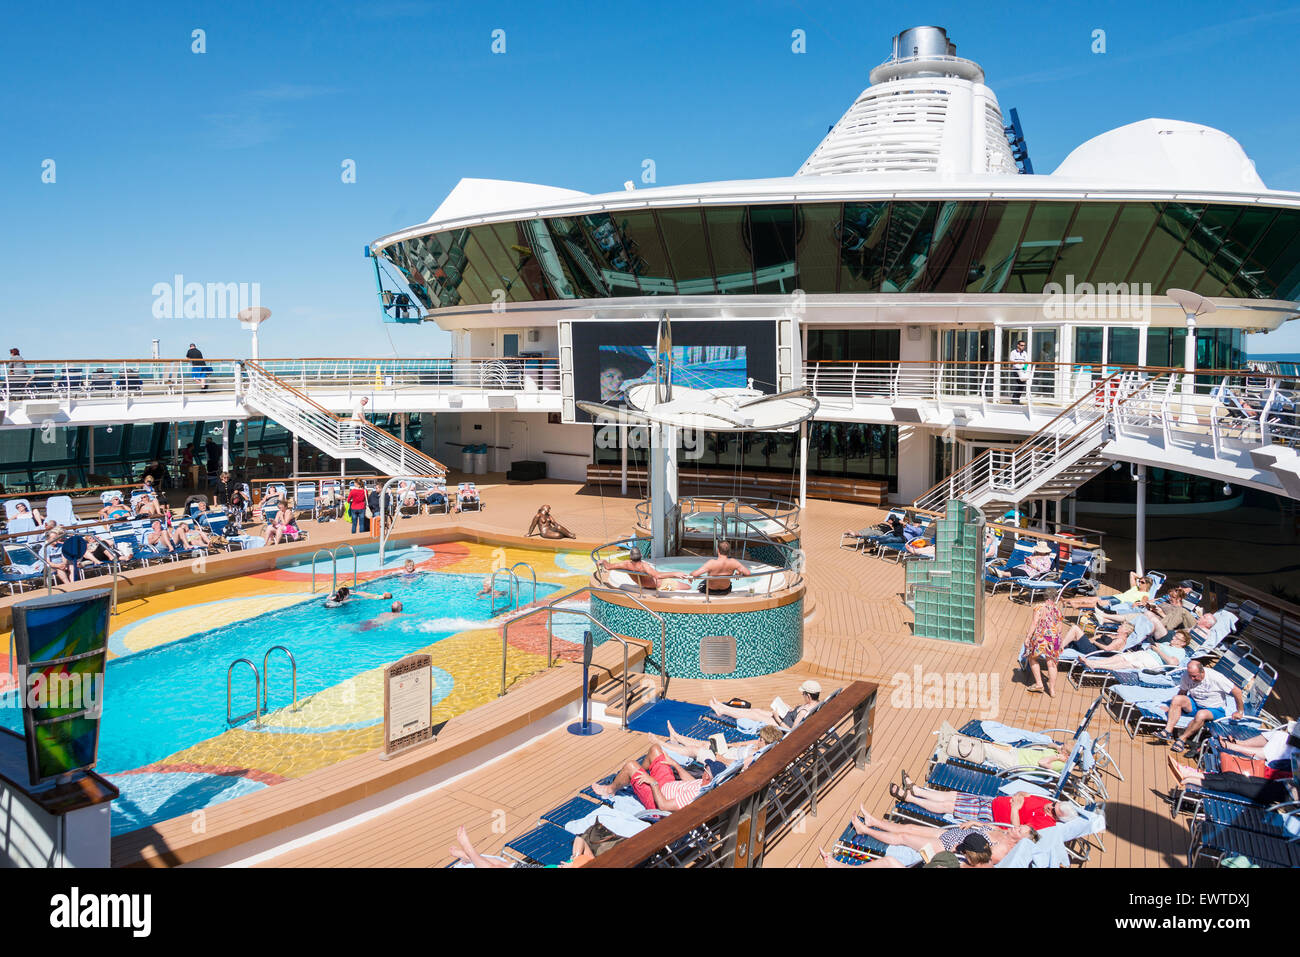 Sundeck of Royal Caribbean 'Brilliance of the Seas' cruise ship, Baltic Sea, Northern Europe - Stock Image